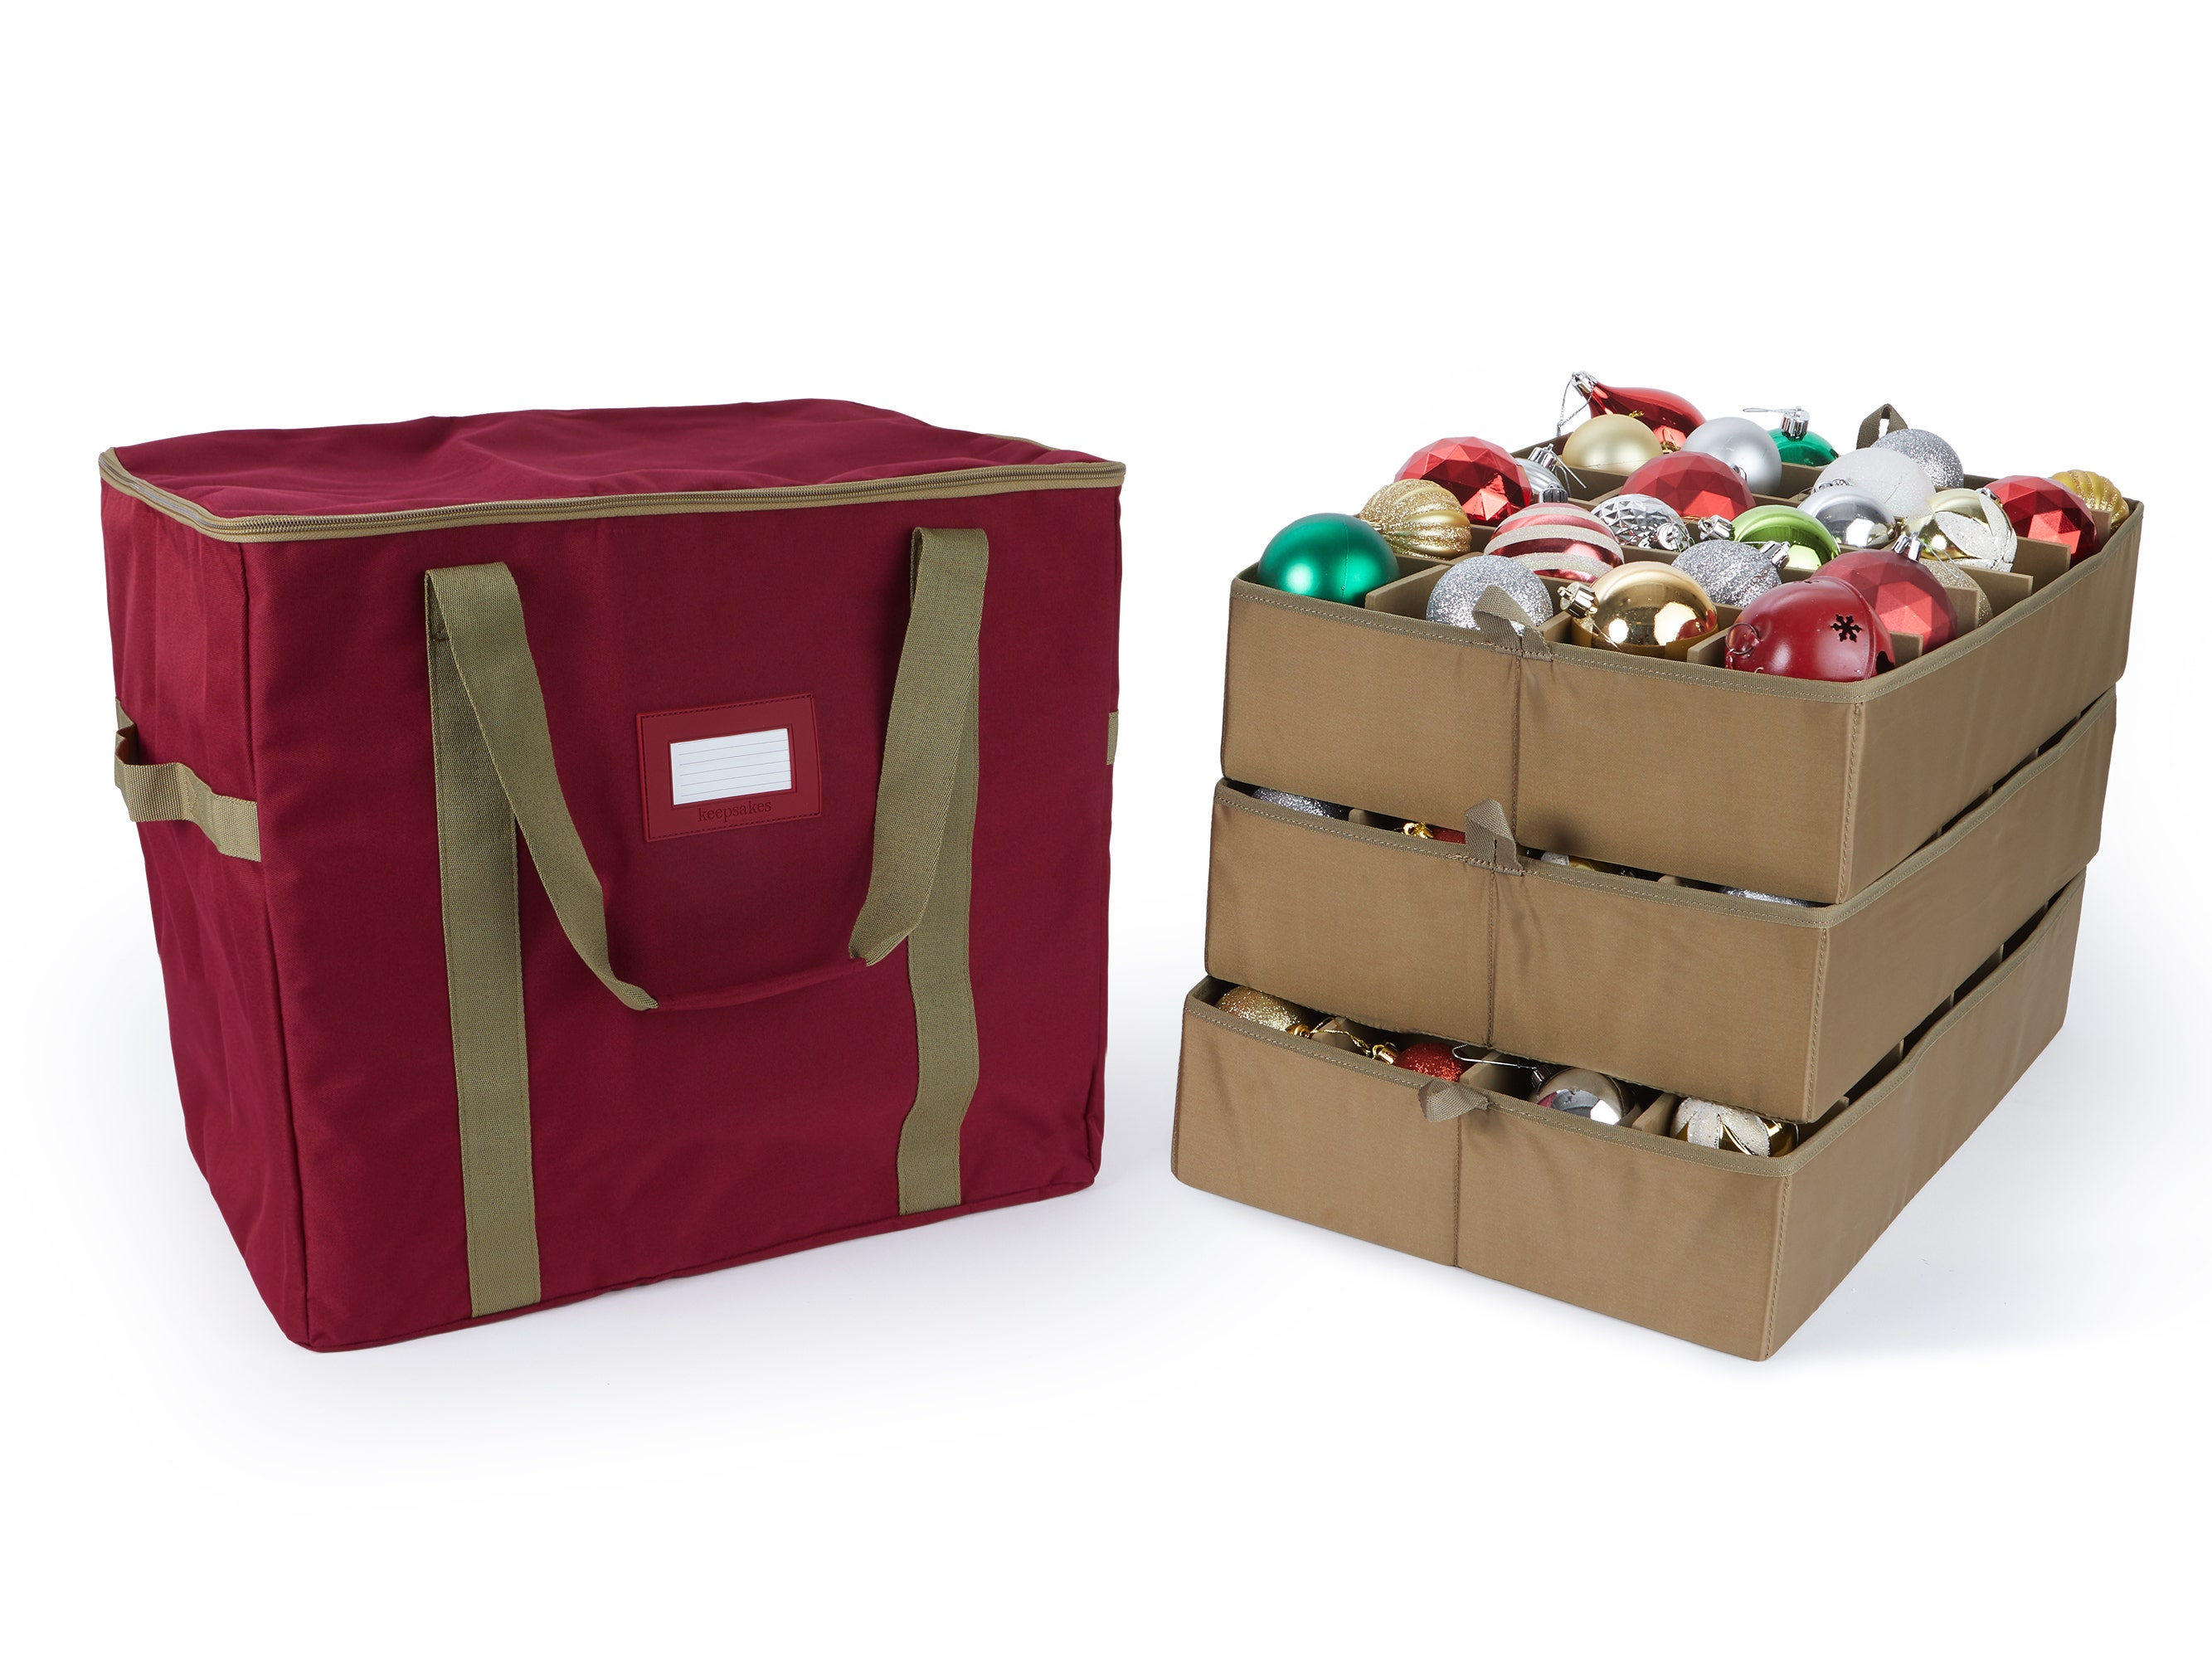 Red ornament storage bag with three trays holding 72 ornaments